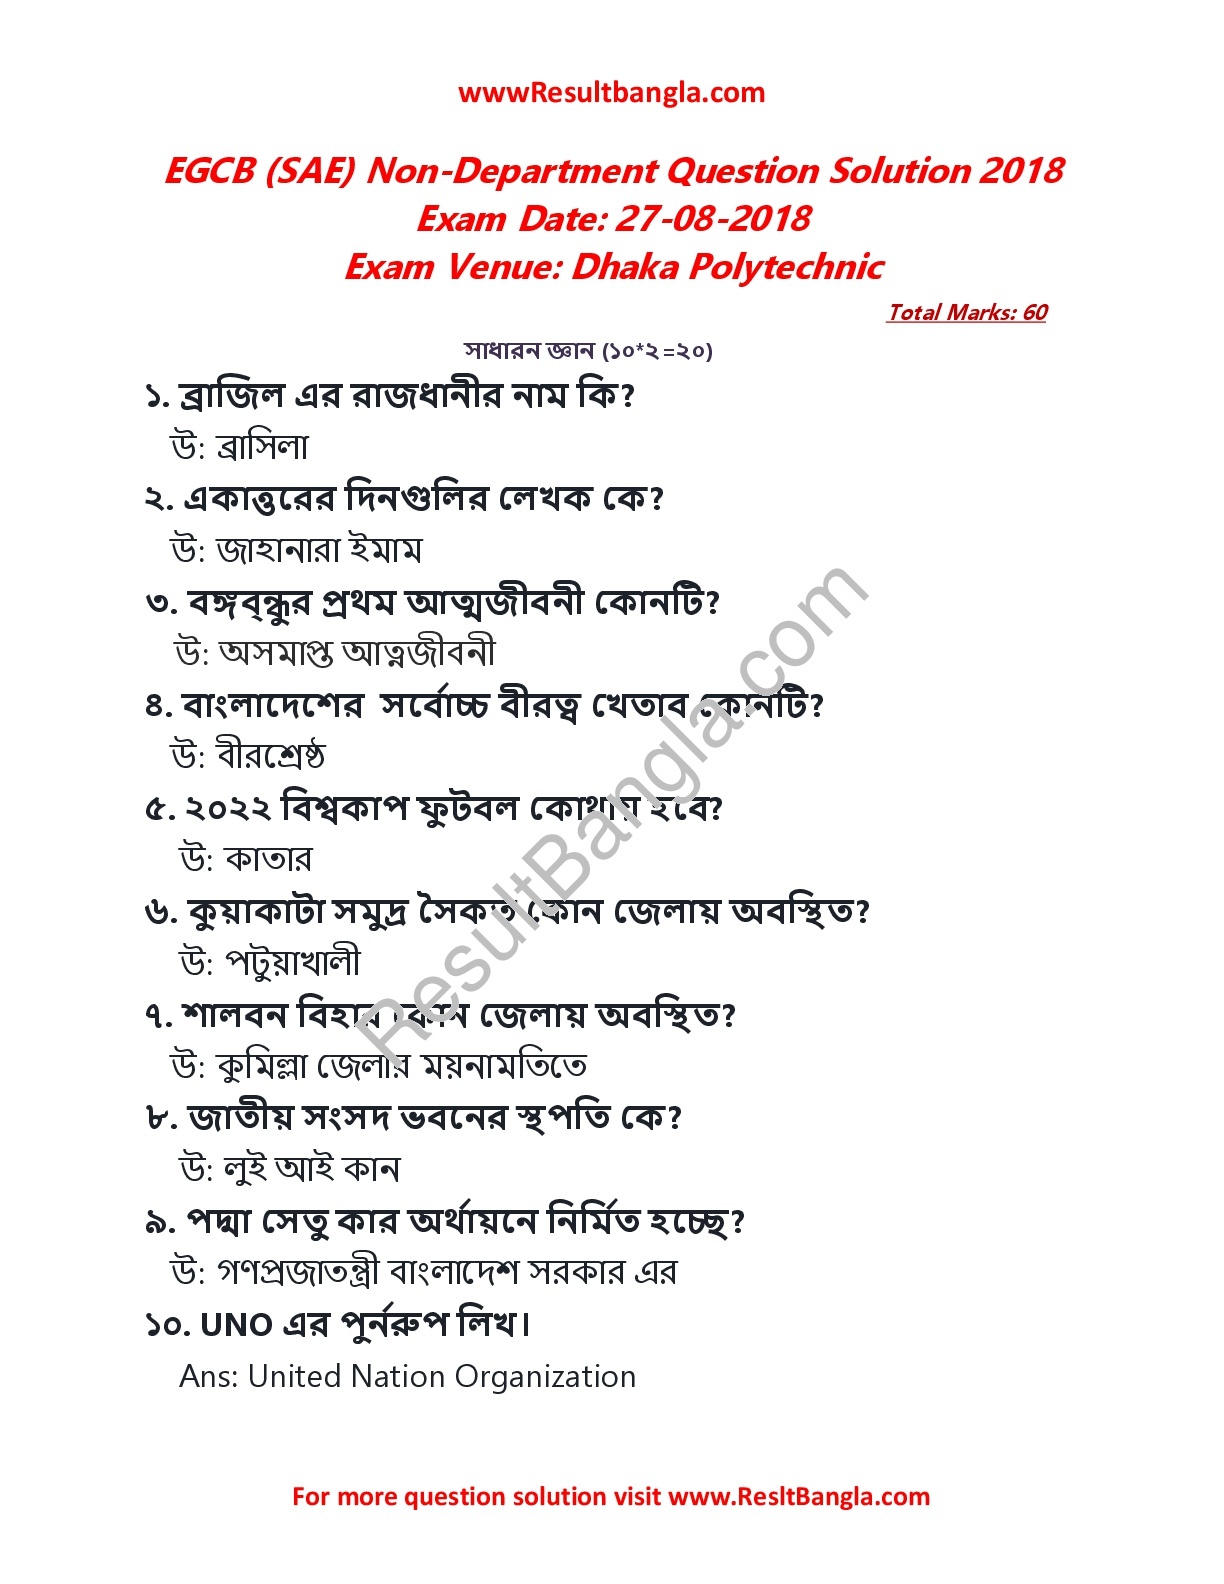 EGCB Non-Department Question Solution 2018